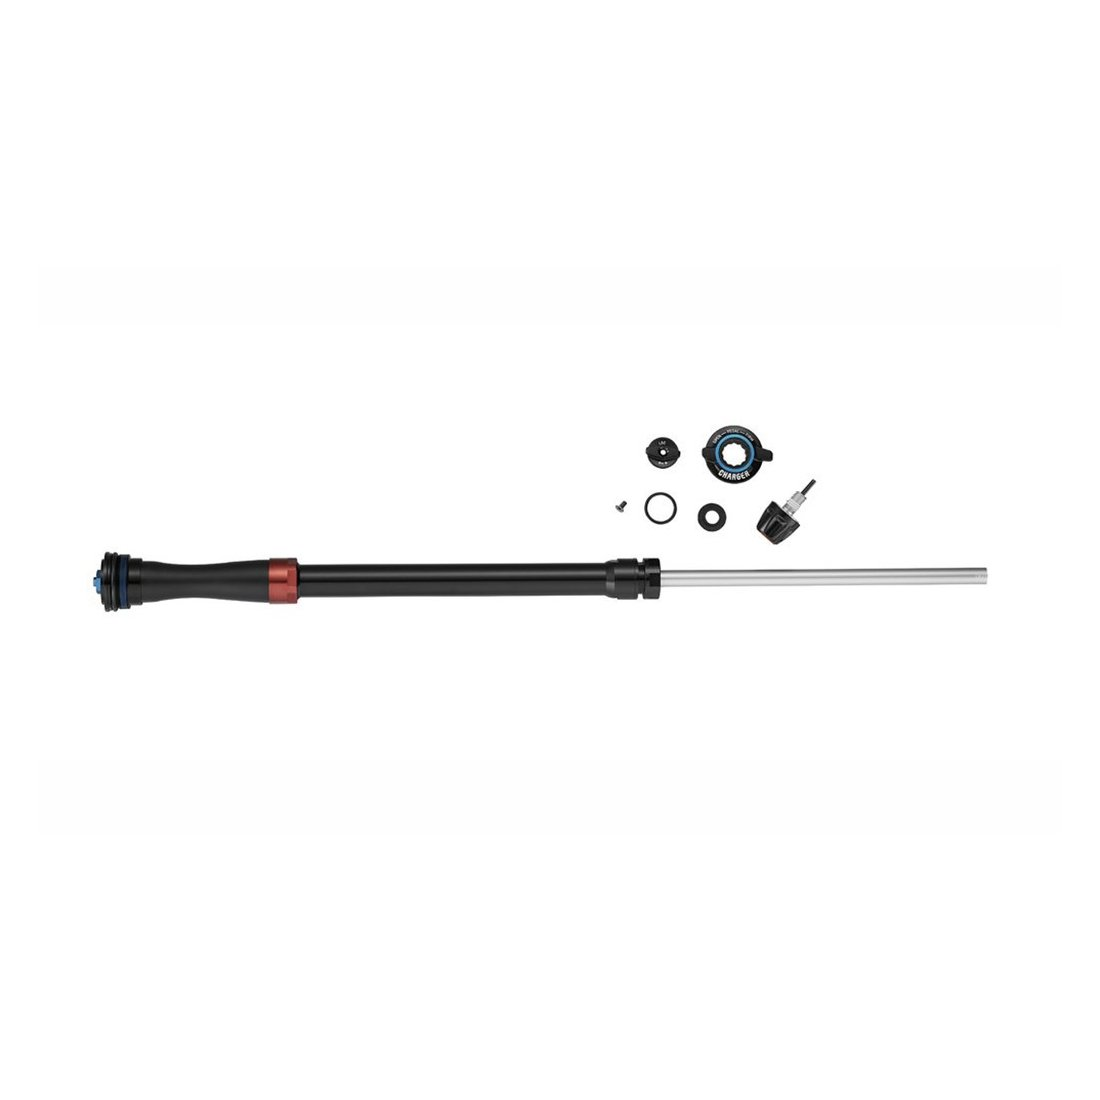 RockShox Damper Upgrade Kit, Charger2 RCT, Remote Adjust, Complete Right Side Internals, Pike 15X100 26''